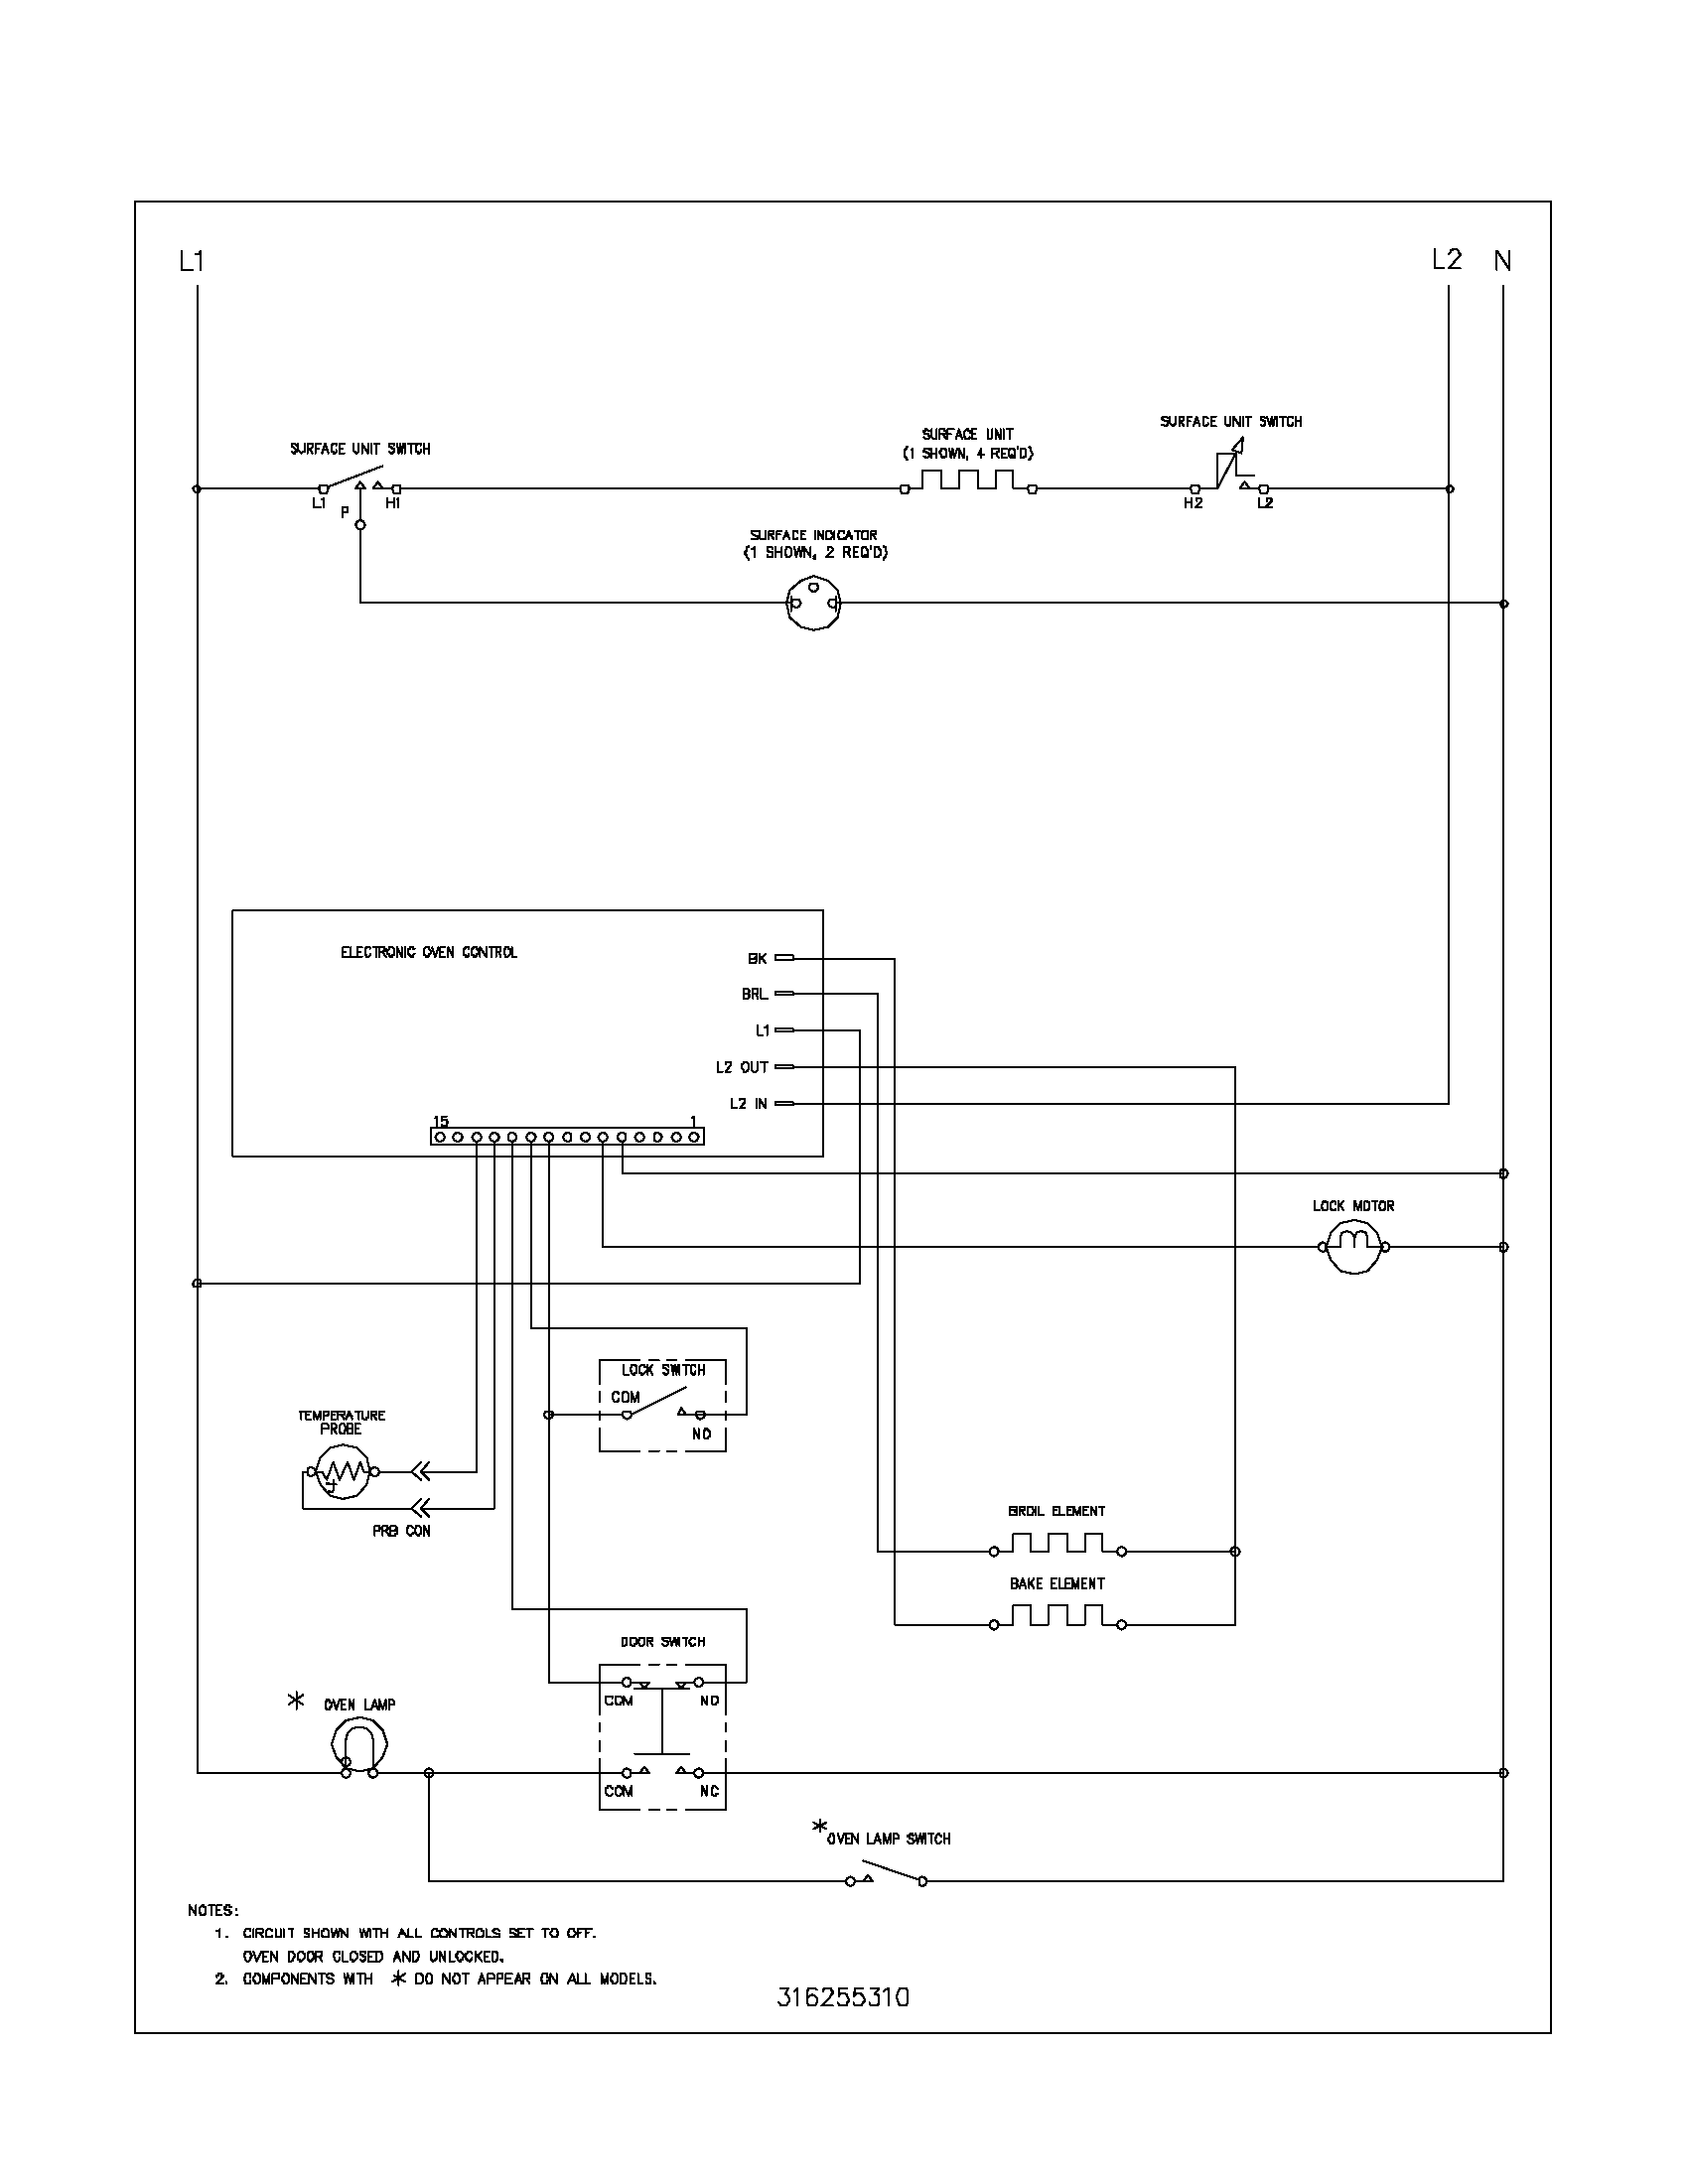 frigidaire fef352asf electric range timer - stove clocks and,Wiring diagram,Wiring Diagram For Frigidaire Range